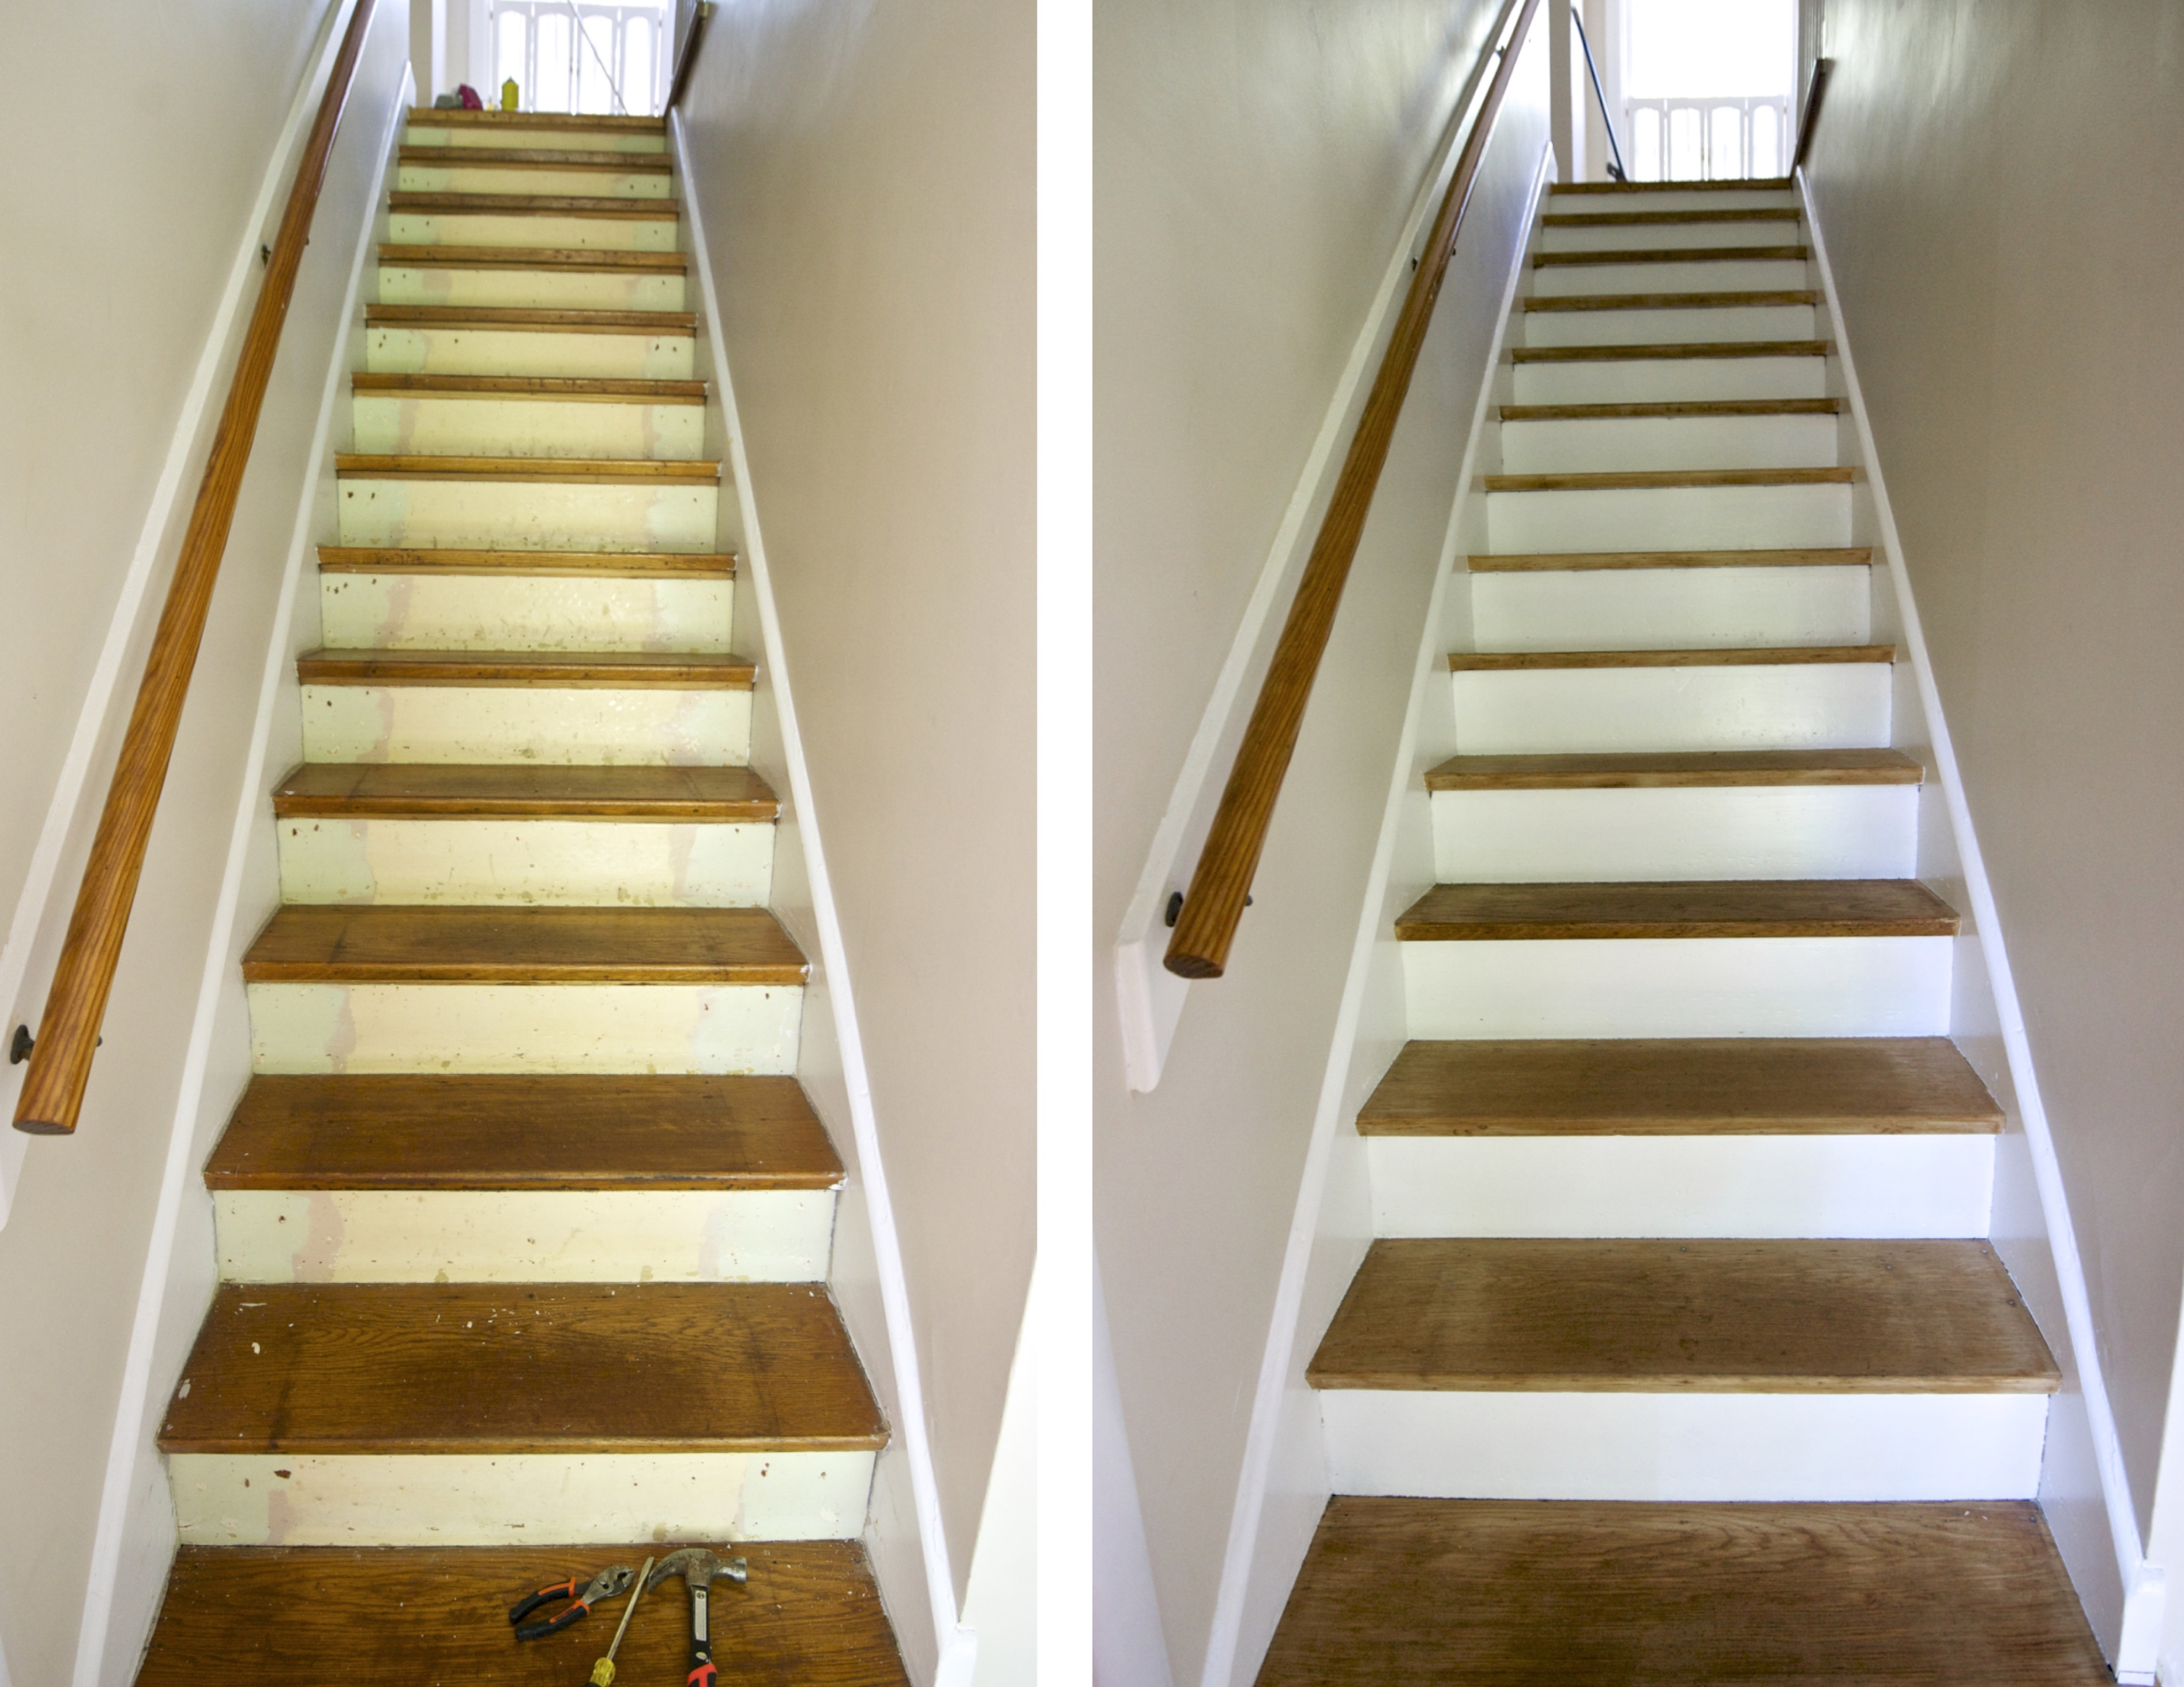 We Figured The Wood Stairs Would Be In Worse Shape Than Any Of The Bedroom  Floors Because They Endure The Most Traffic, But We Werenu0027t Prepared For  The ...